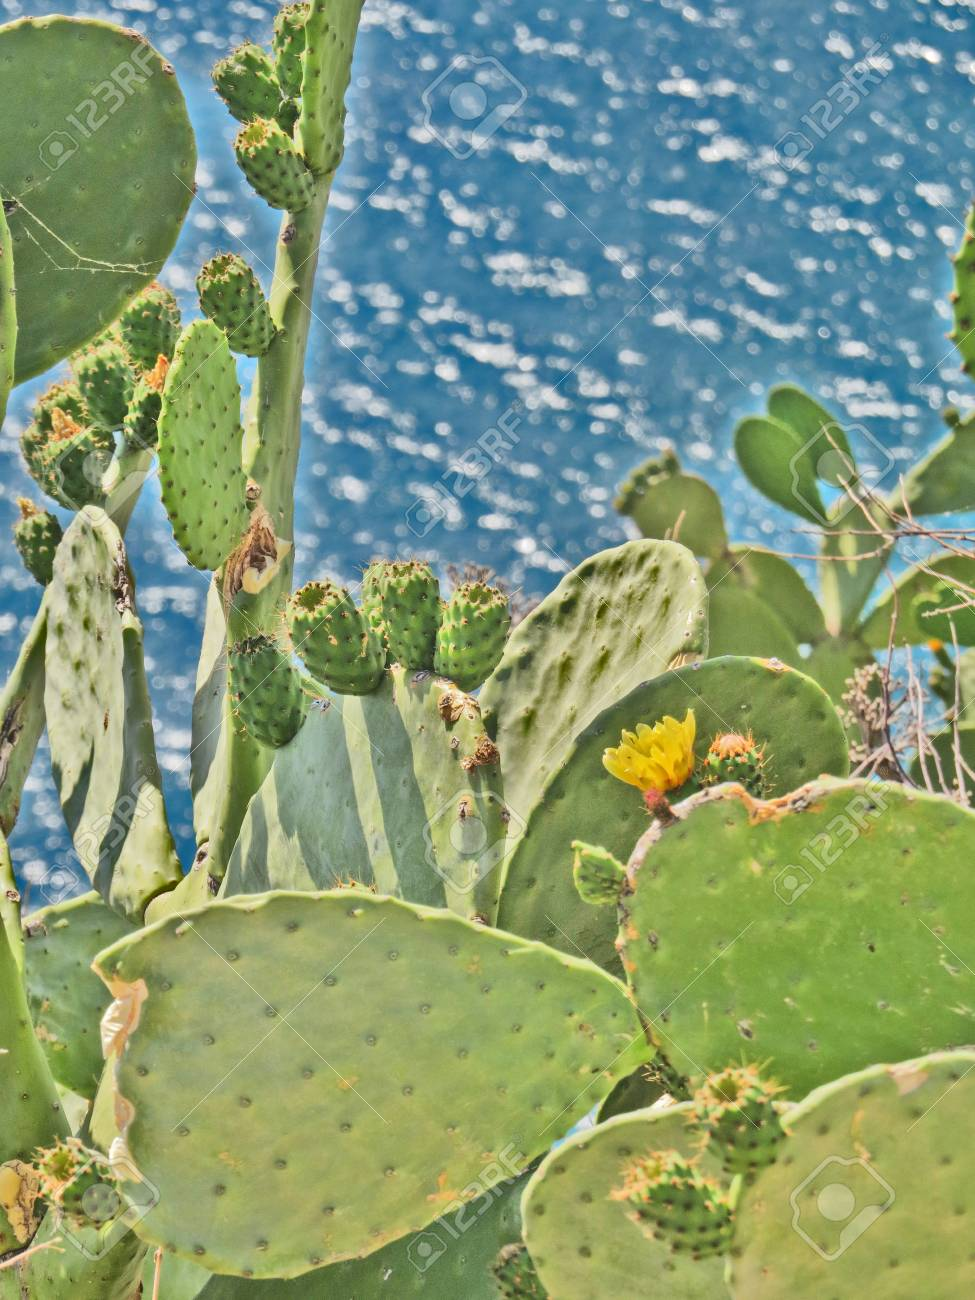 Opuntia Prickly Pear Cactus by the aegean sea Stock Photo - 90295521